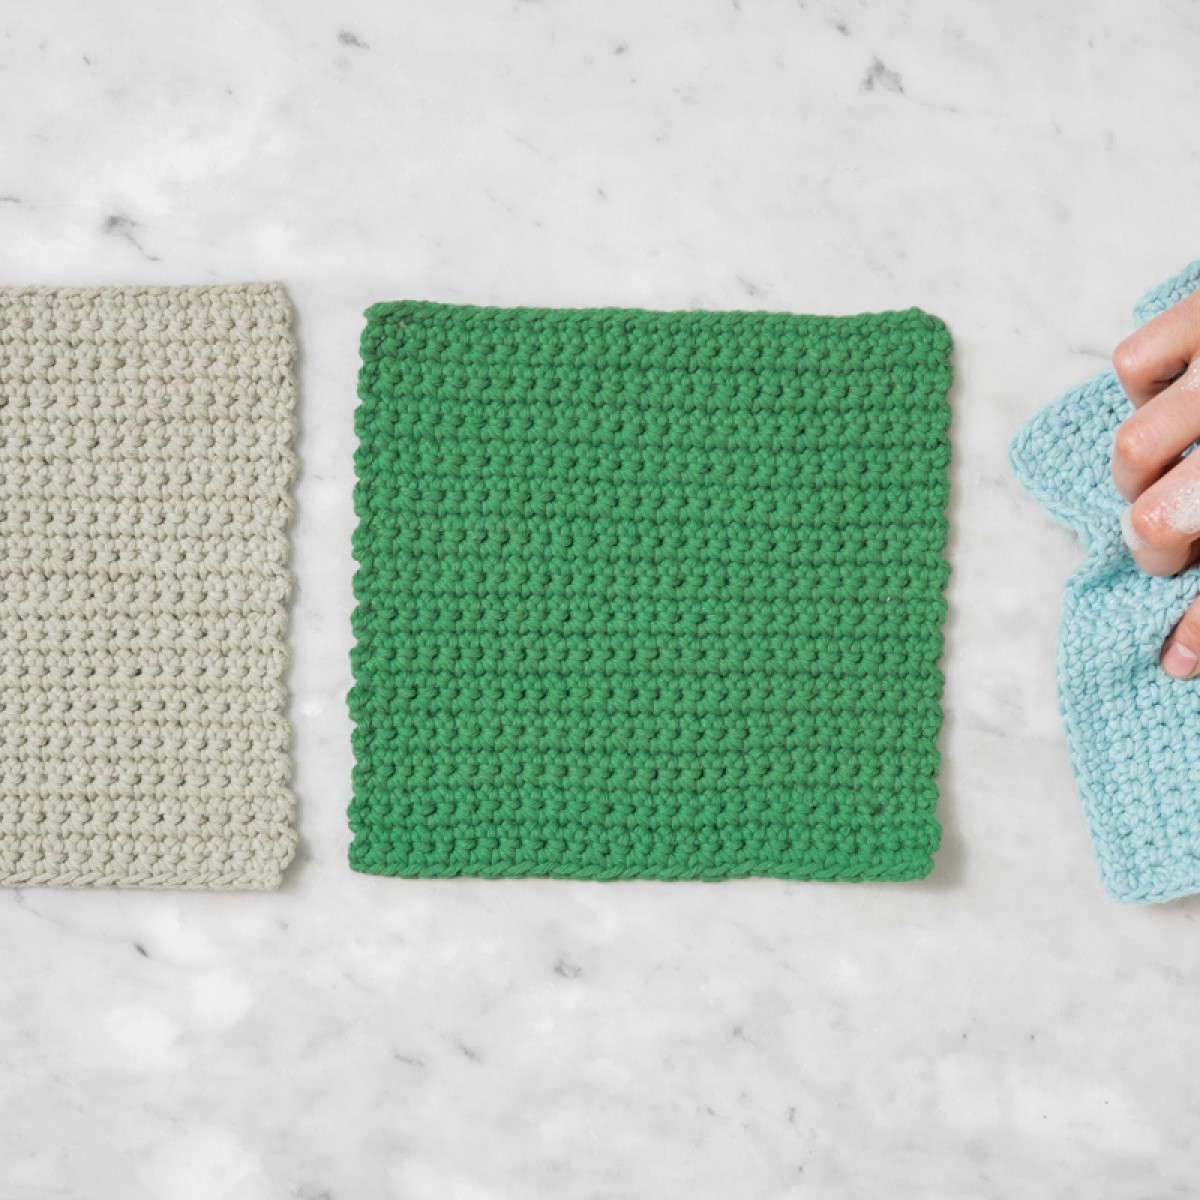 Quick and Simple Dish Cloth Crochet Pattern Easiest Crochet Project Ever Stitch A Dishcloth